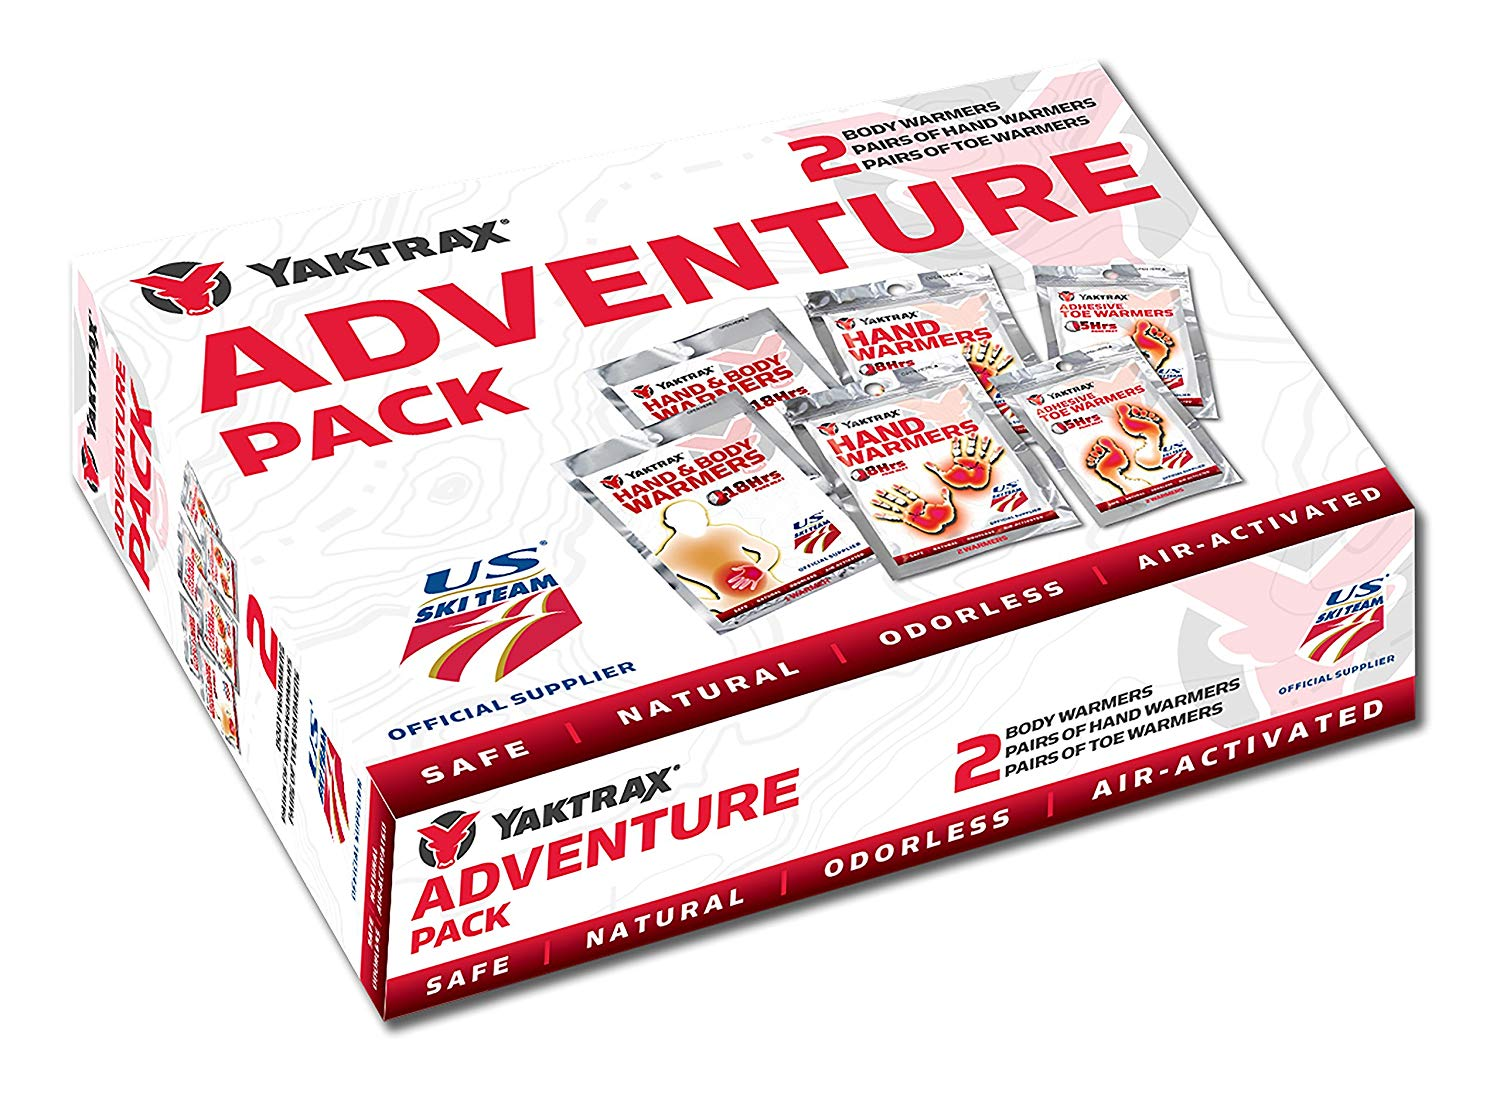 Yaktrax Adventure Pack Air-Activated Warmers